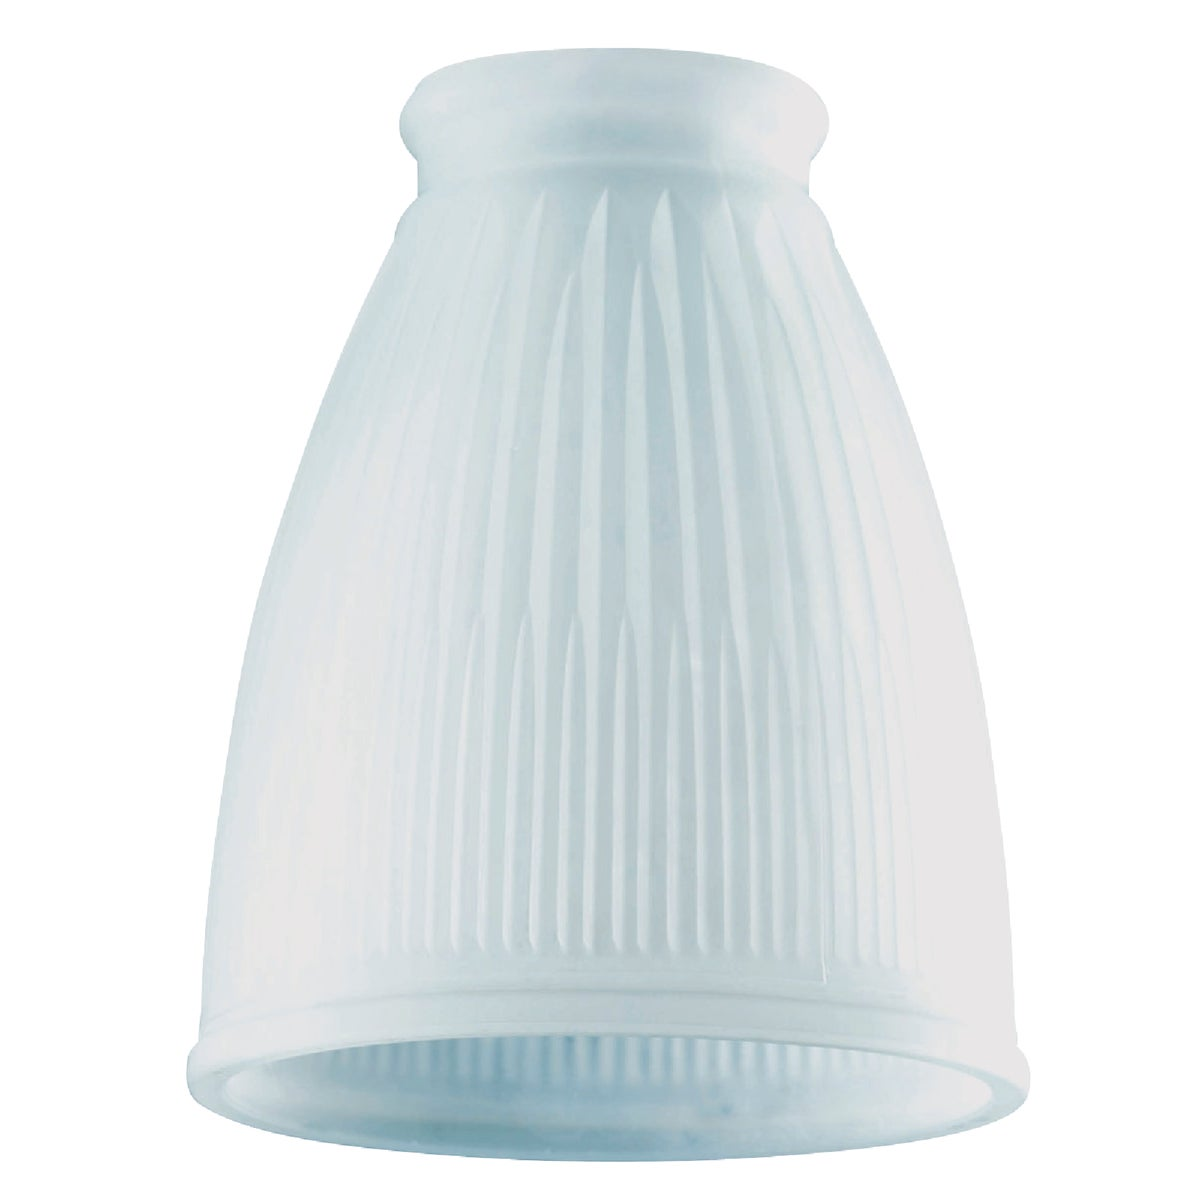 FROST PLEAT GLASS SHADE - 81094 by Westinghouse Lightng